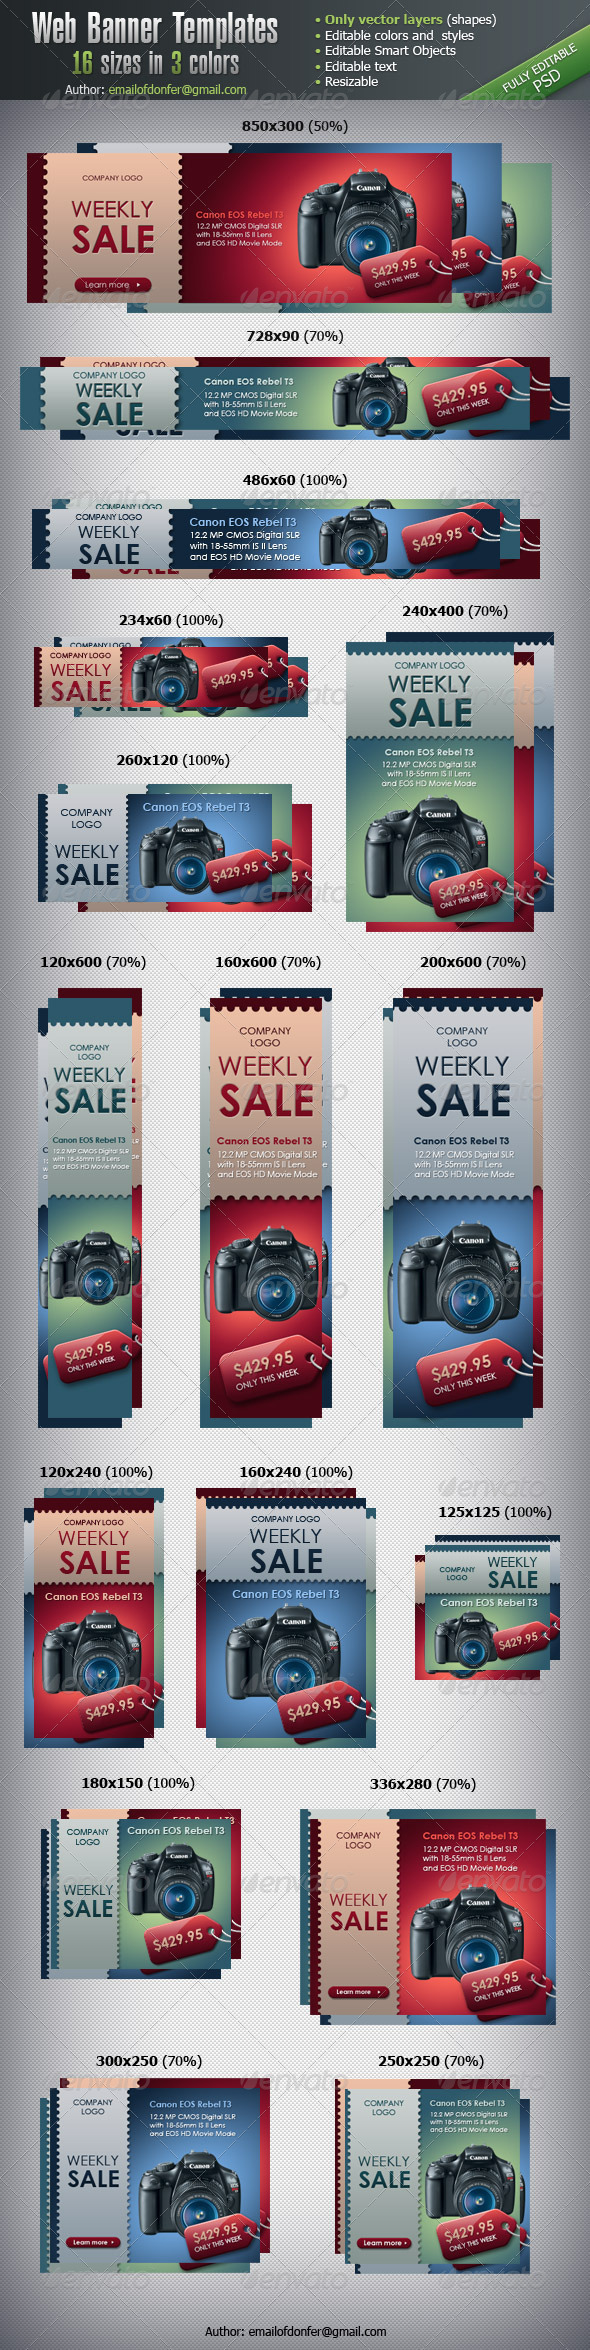 GraphicRiver Web Banner Templates 16 sizes 3202760